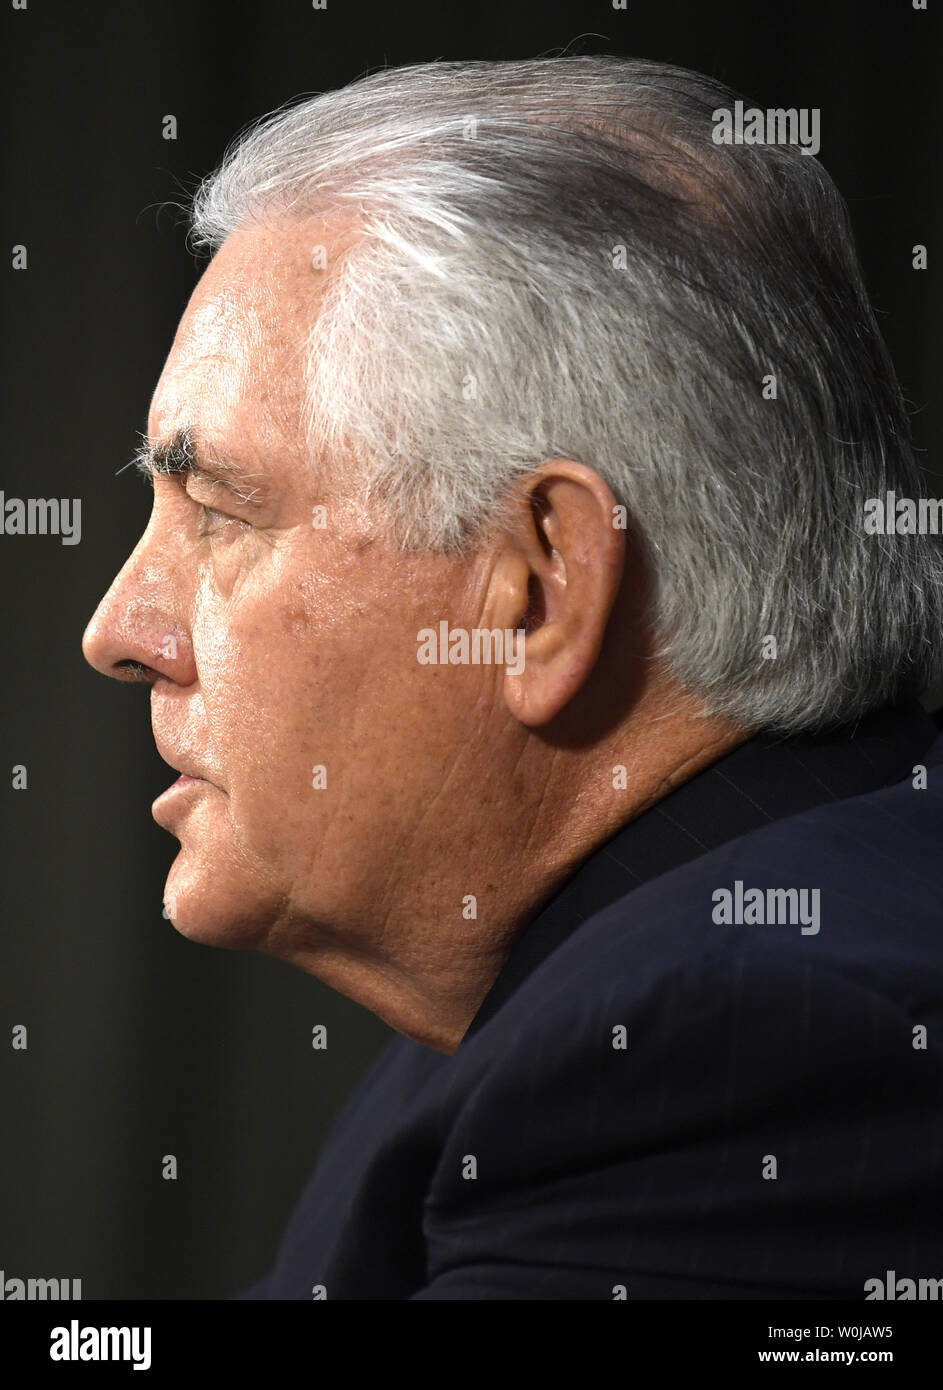 Former ExxonMobil CEO Rex Tillerson, nominated for secretary of state, responds to questioning during Senate Foreign Relations Committee confirmation hearings, on Capitol Hill, January 11, 2017, in Washington, DC. Tillerson's close business relationship with Russia is expected to be scrutinized by the panel.             Photo by Mike Theiler/UPI Stock Photo